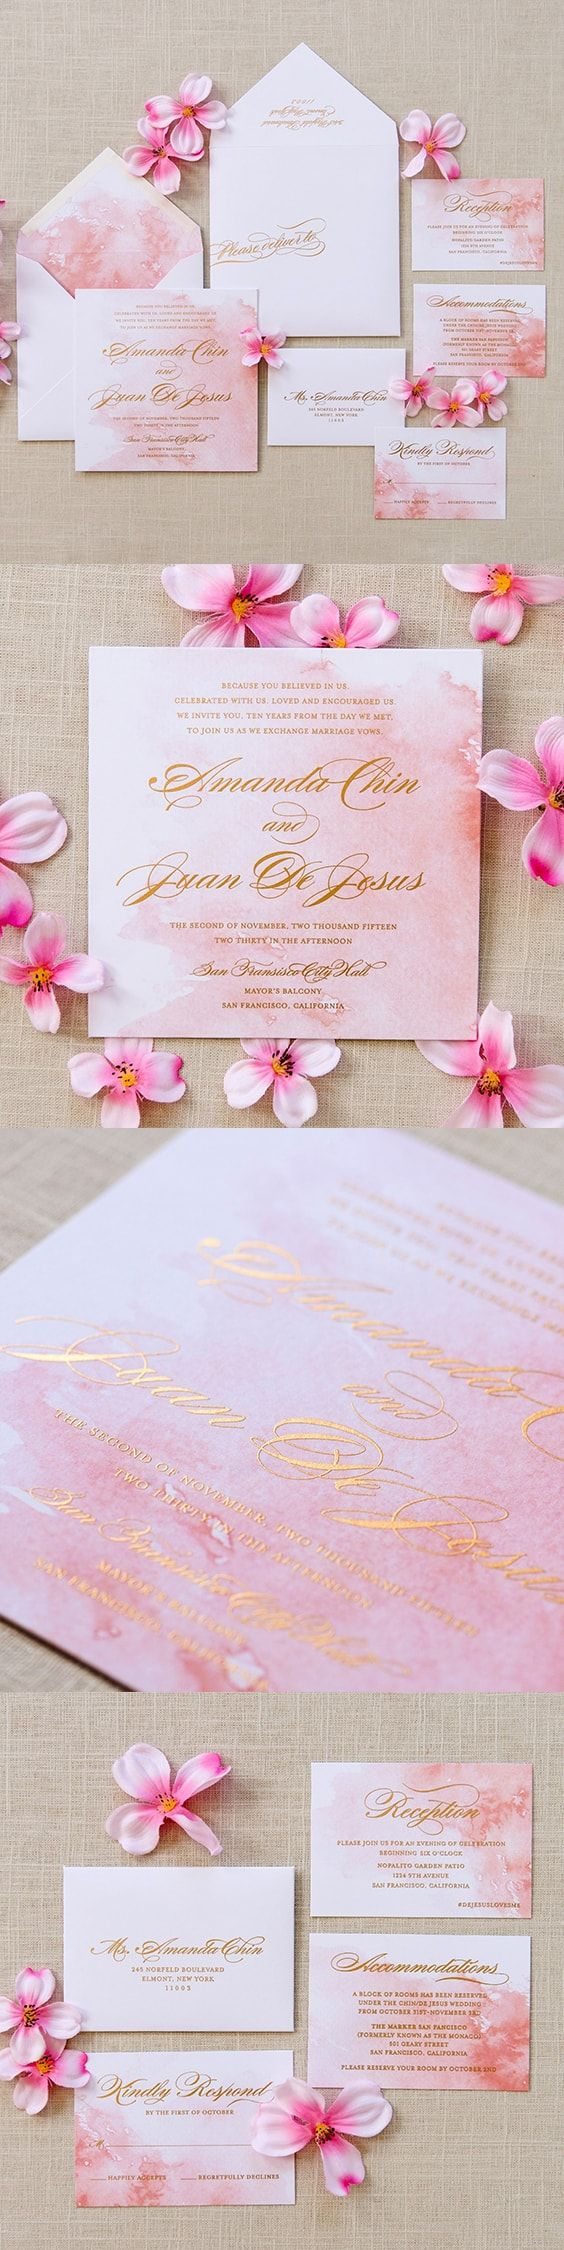 1251 Best Wedding Cards Images On Pinterest Invitation Cards